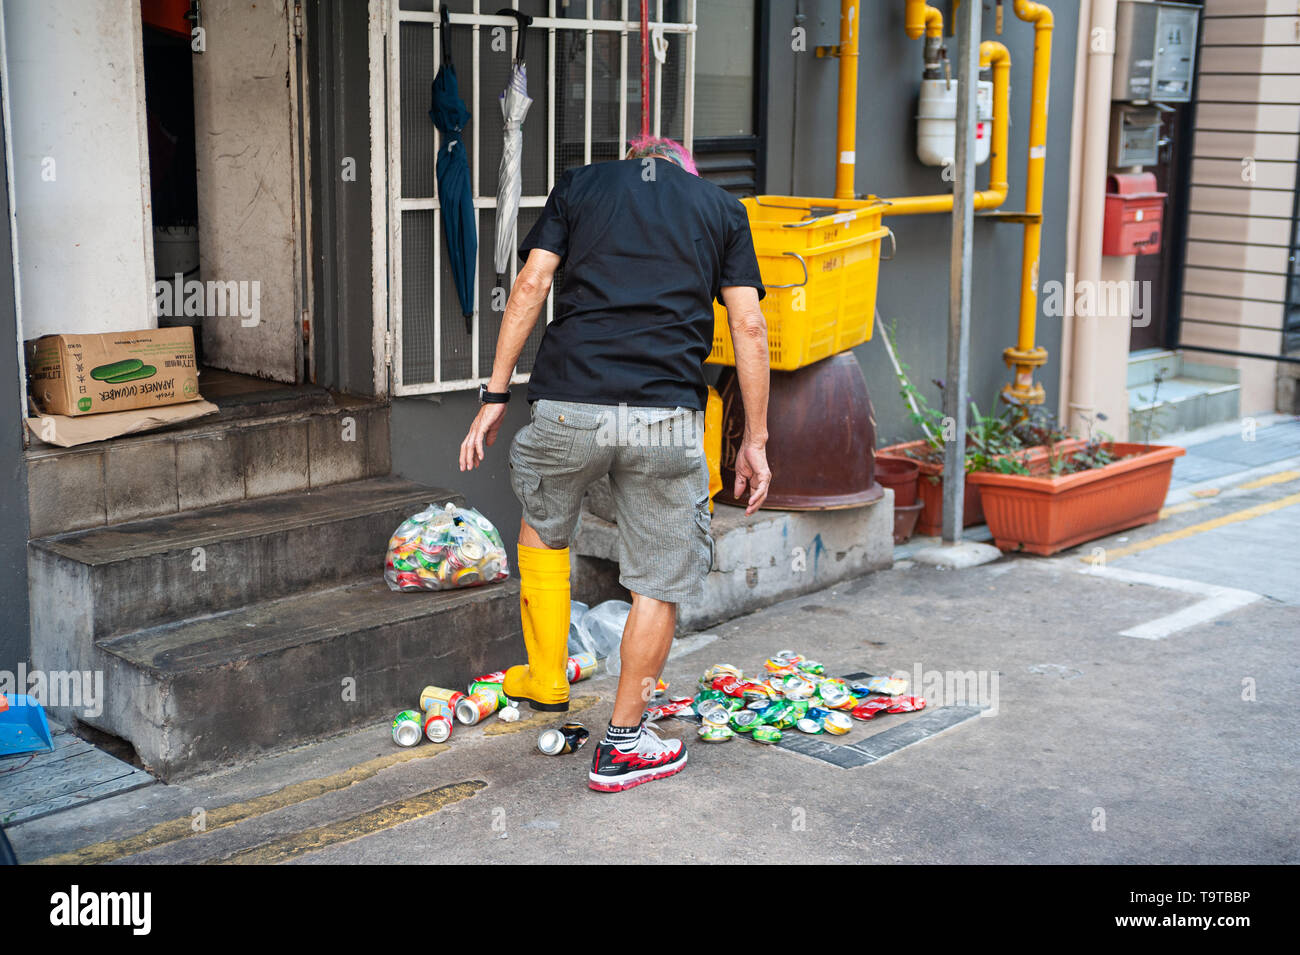 15.03.2019, Singapore, Republic of Singapore, Asia - A man in Chinatown is crushing empty beverage cans with a rubber boot. - Stock Image